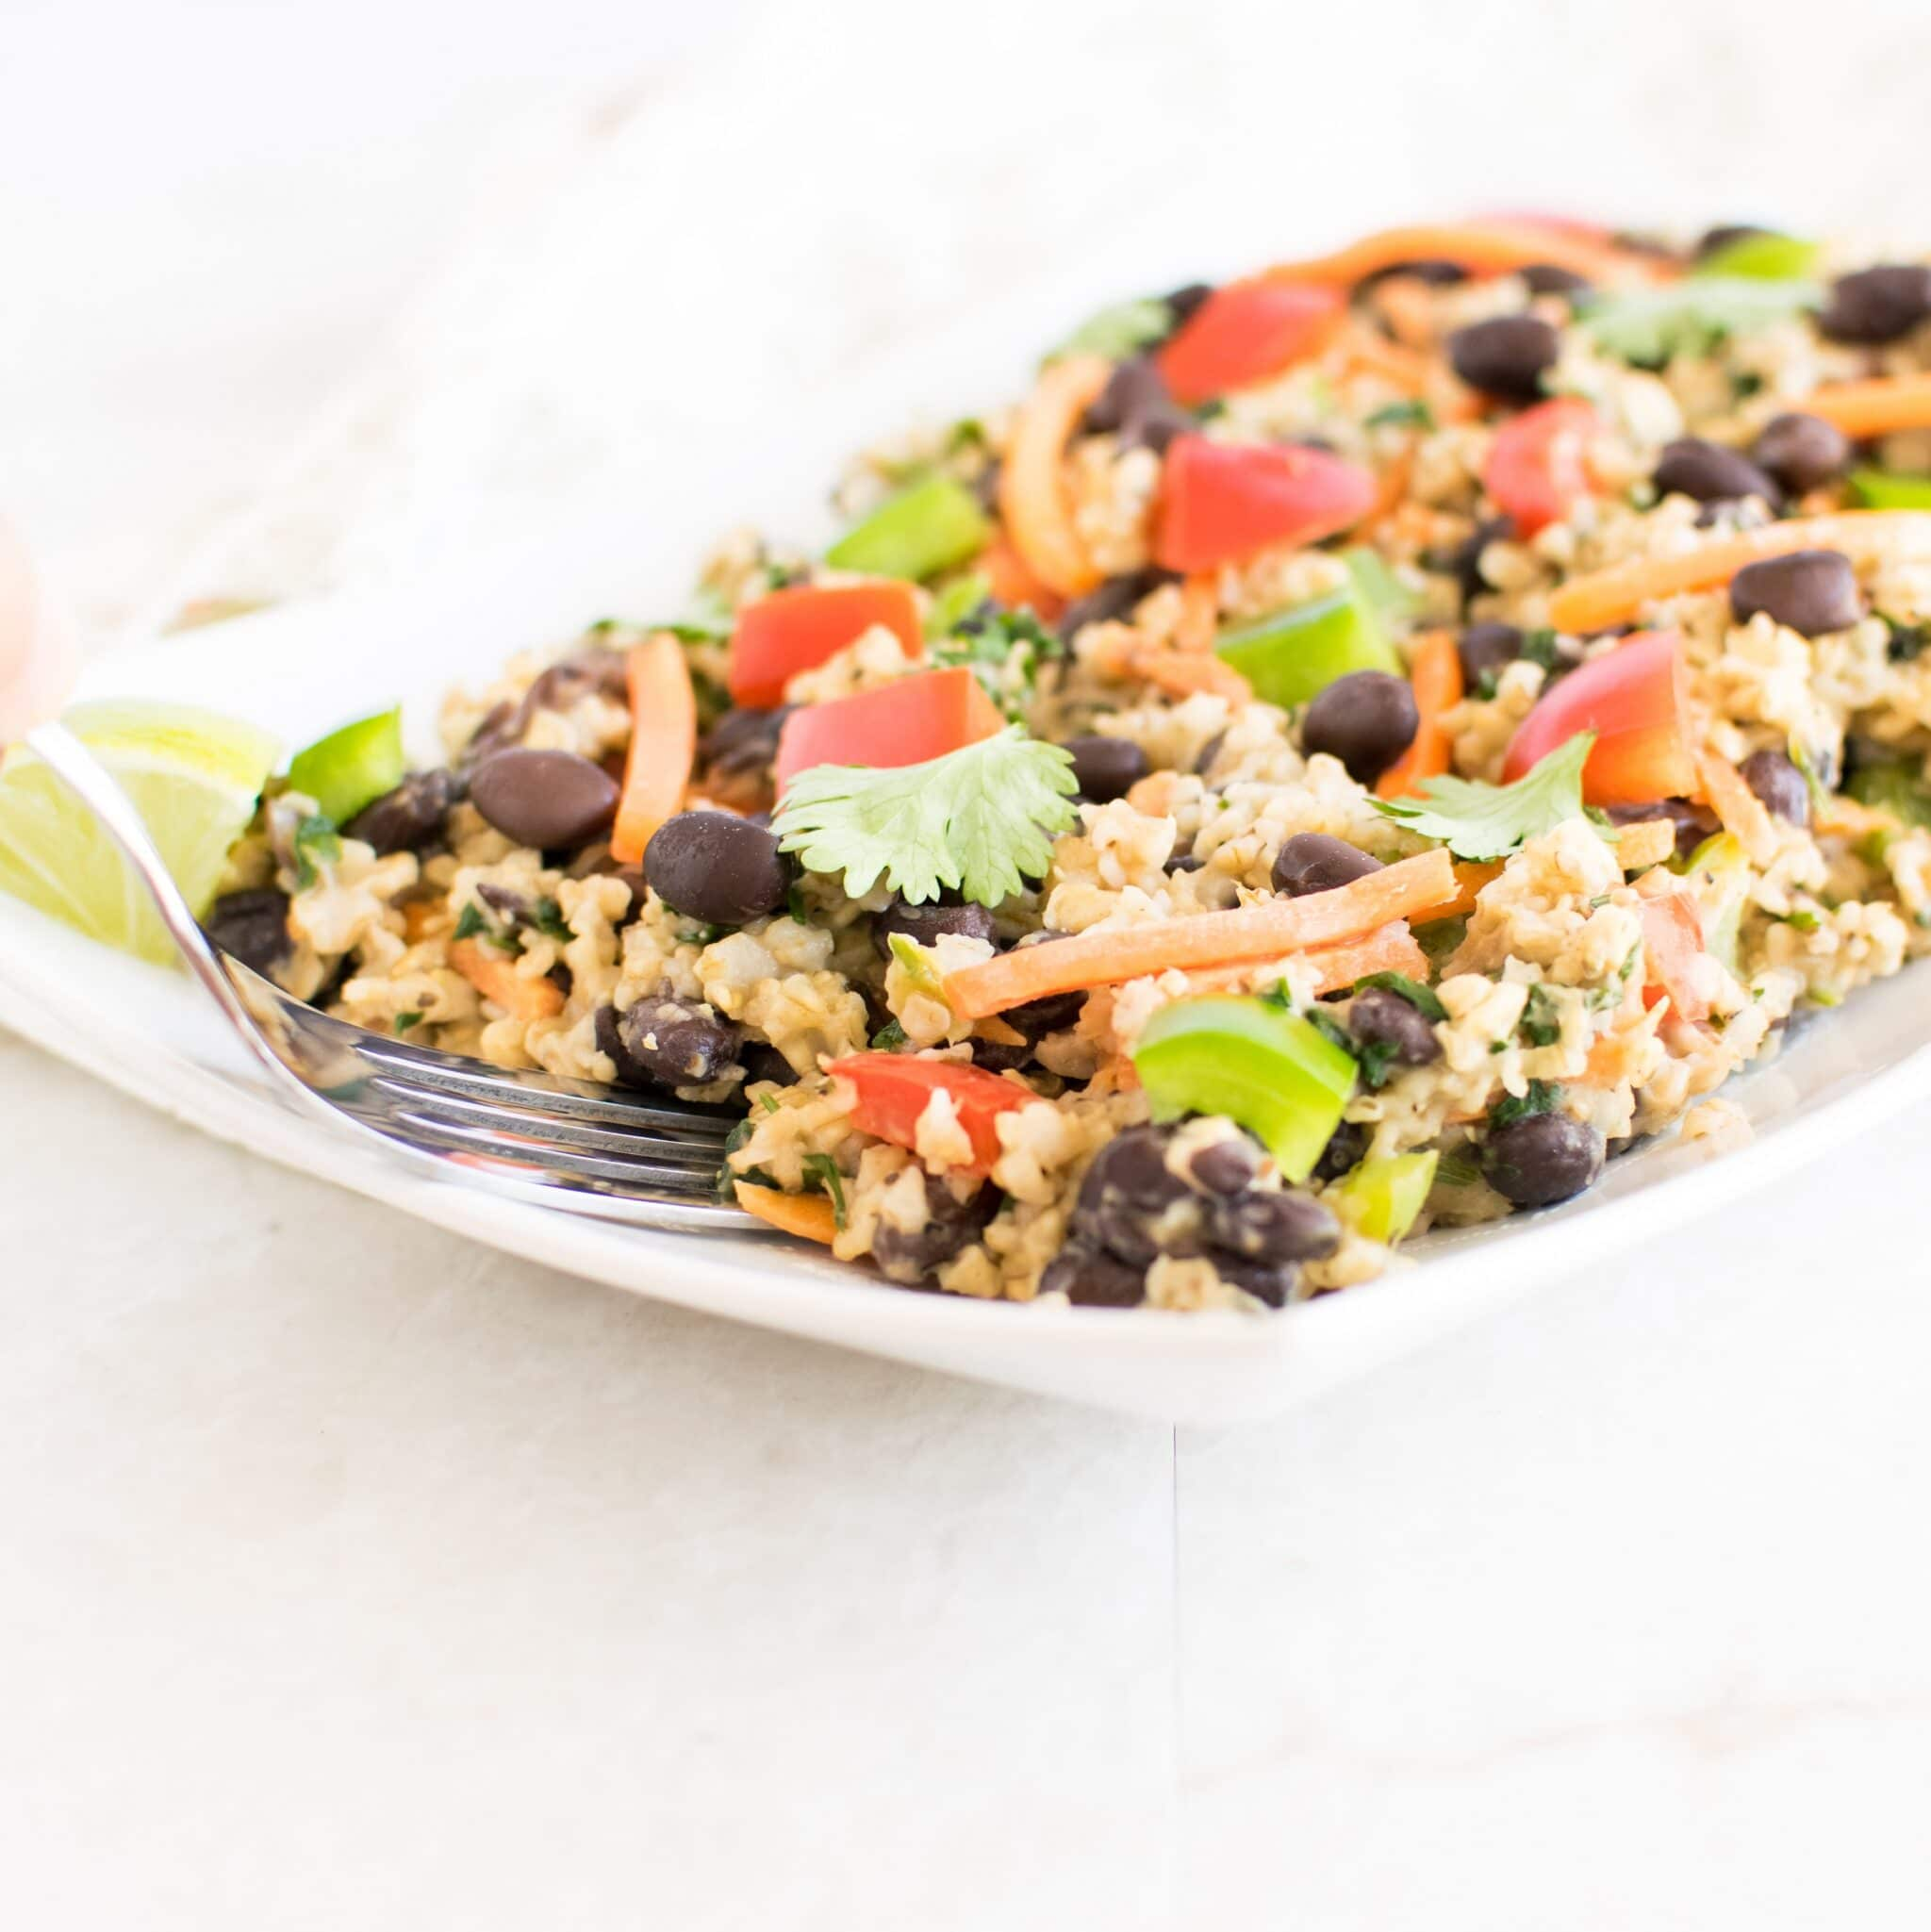 Black Beans Oatmeal Pilaf | flavorful and progestin rich vegan back to school lunch box recipe | kiipfit.com